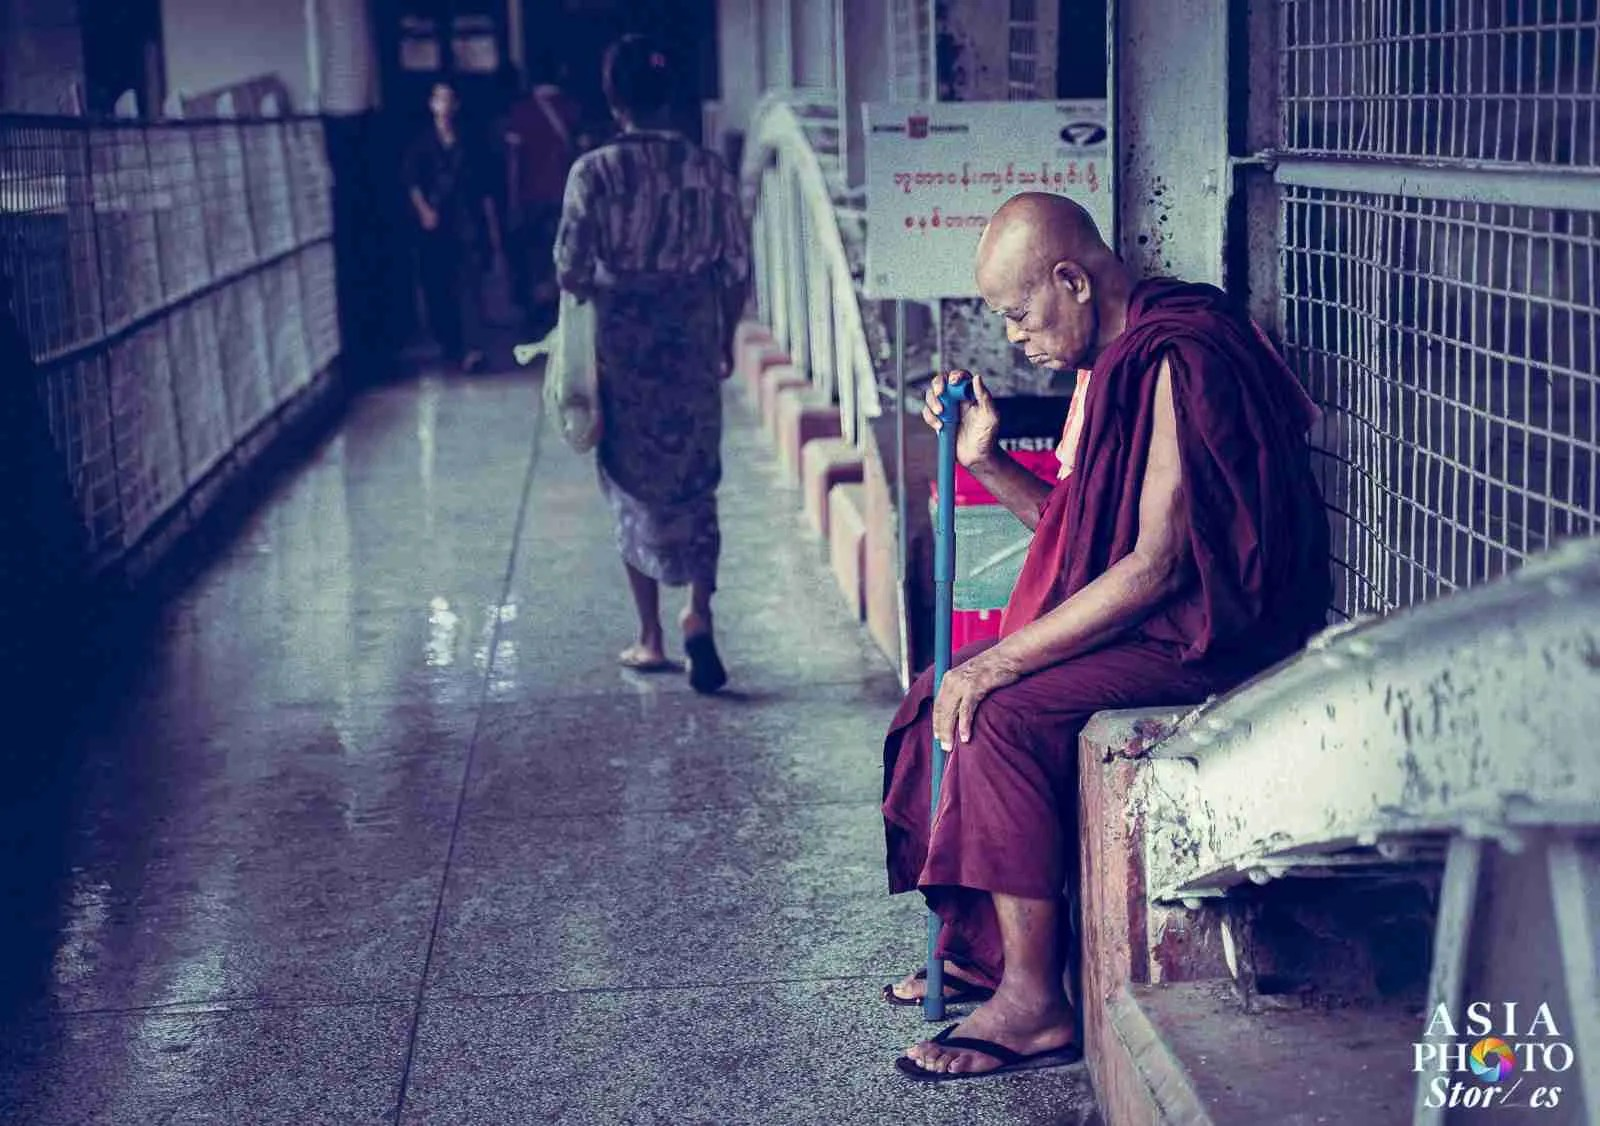 A monk takes refuge in an open-windowed corridor during a blustery thunderstorm at Yangon's Central Railway Station.